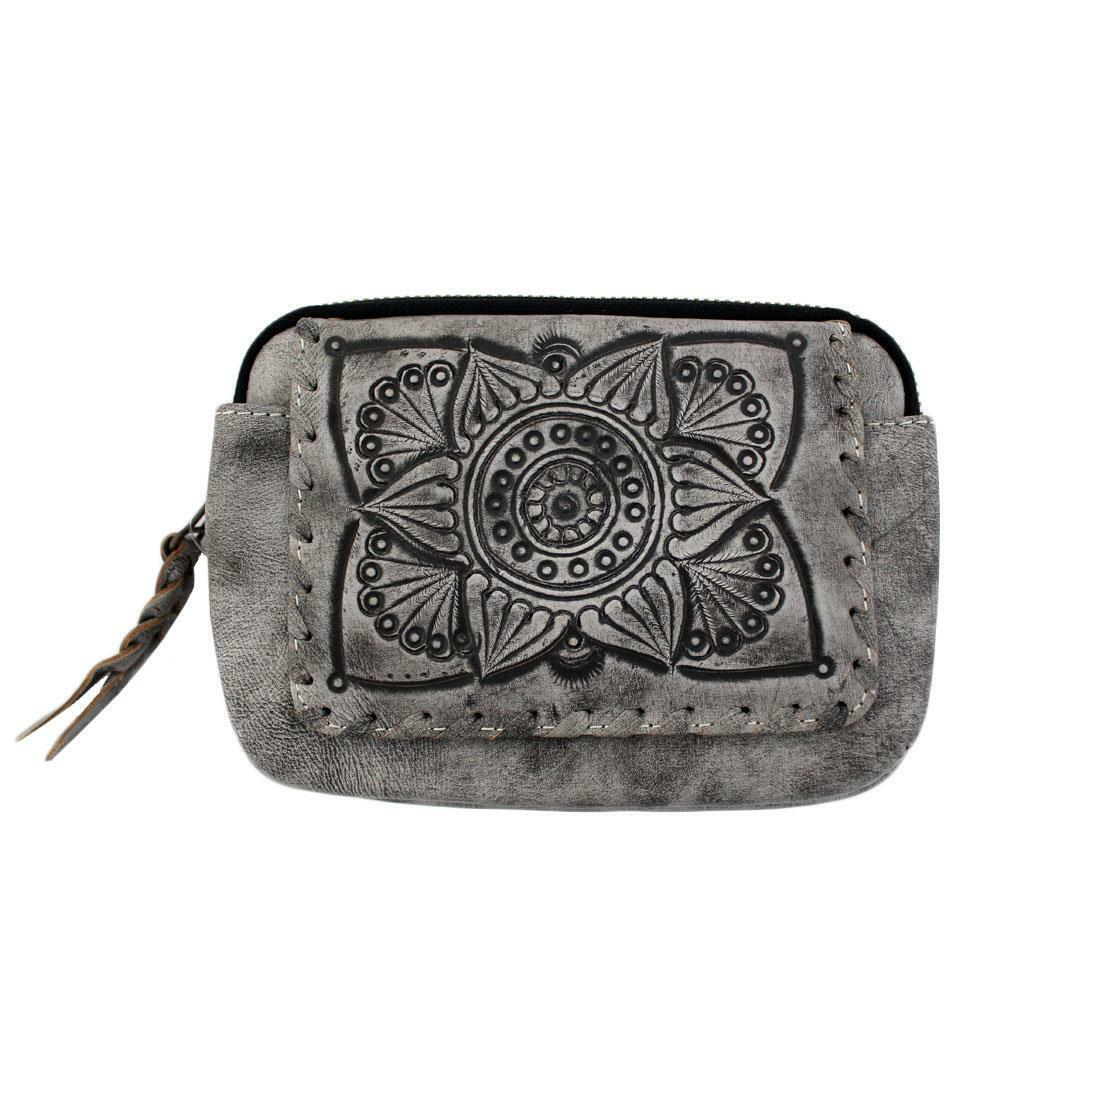 Leaders in Leather Hand Made Womens Boho Zip Around Wallet with Mandala Design